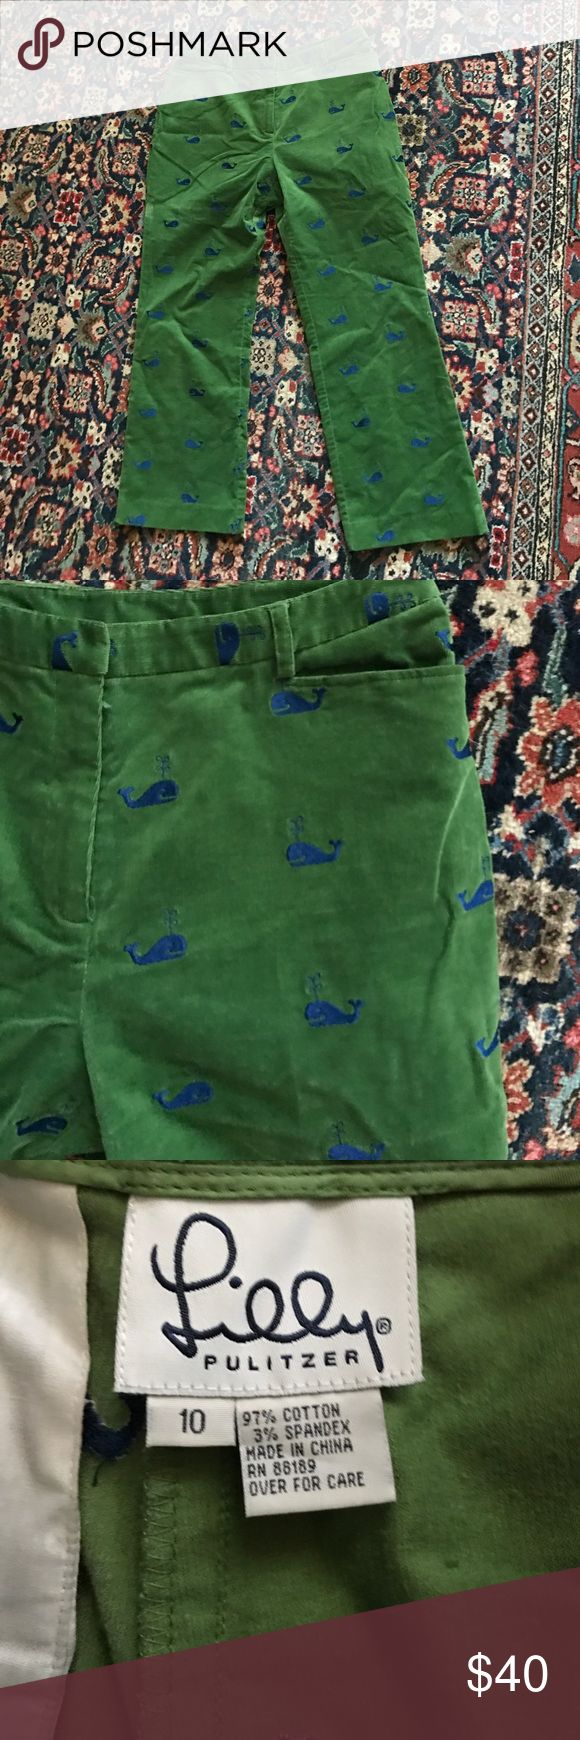 Lilly Pulitzer kelly green cord trouser pants 10 Adorable finewhale cord (not too heavy at all) and with adorable navy whale print Kelly green cords so Lilly Pulitzer. Flattering fit size 10 could possibly work for an 8.  Just in time for spring. 97% cotton and 3% spandex So have some nice stretch to them. Barely worn. Lilly Pulitzer Pants Ankle & Cropped